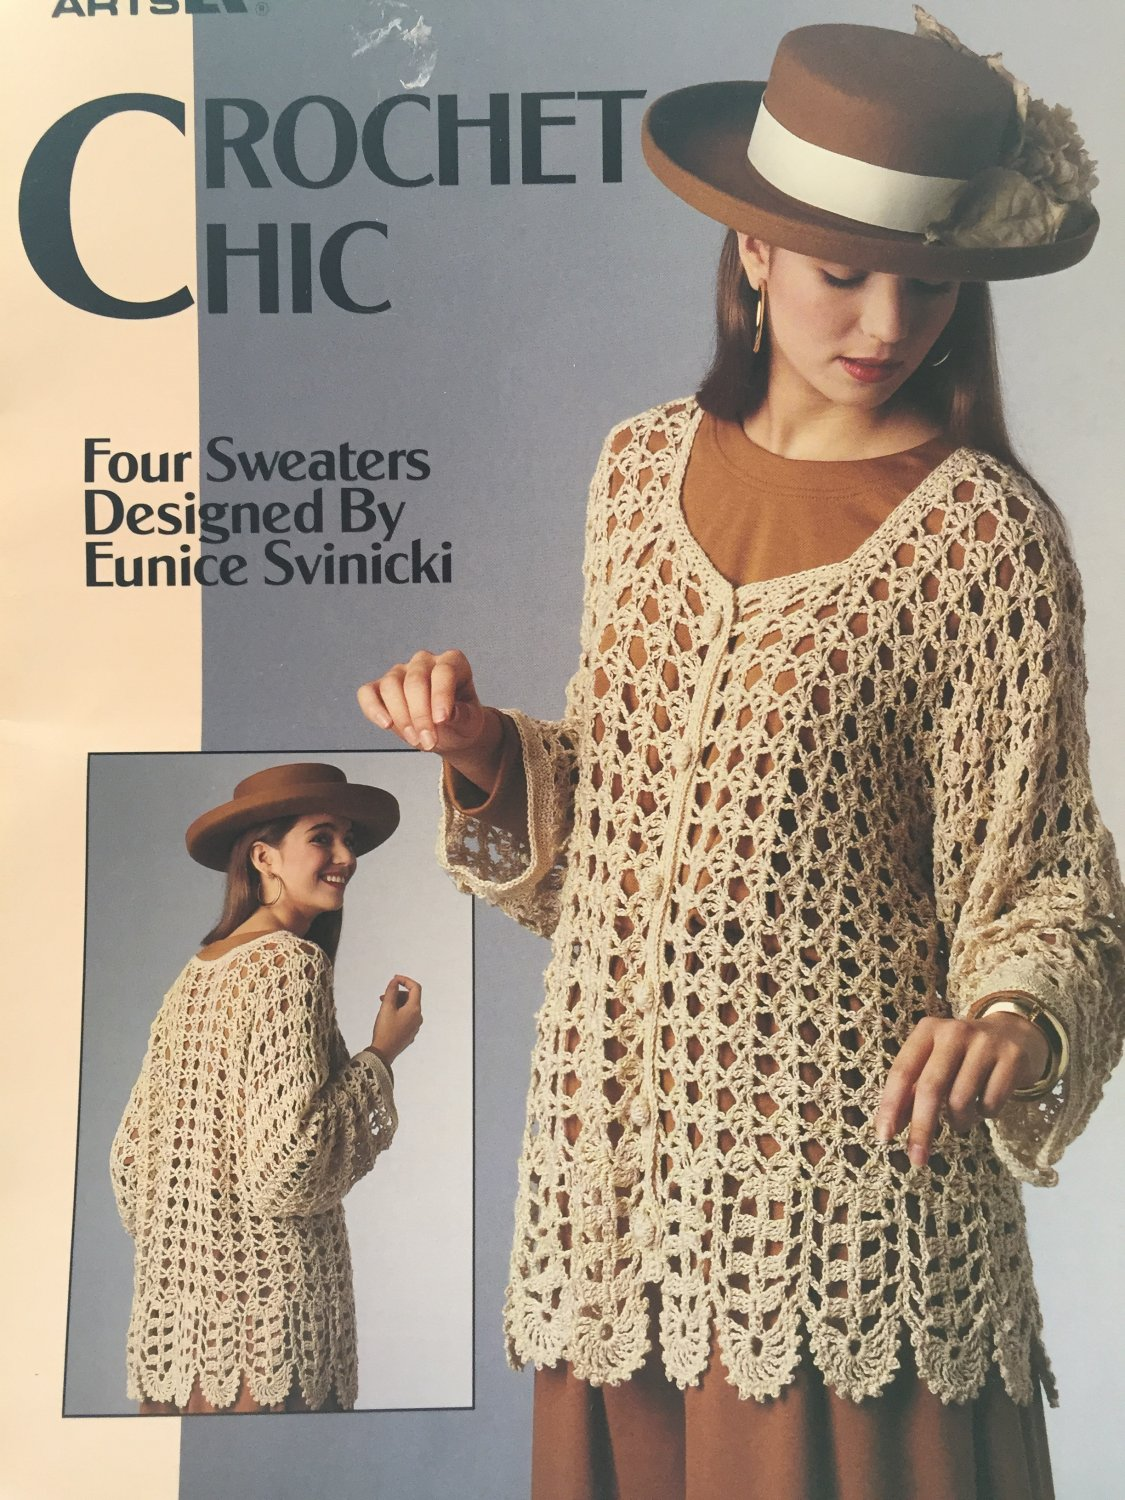 Crochet Chic Lacy tops Crochet Pattern Leisure Arts 2194 sizes medium large